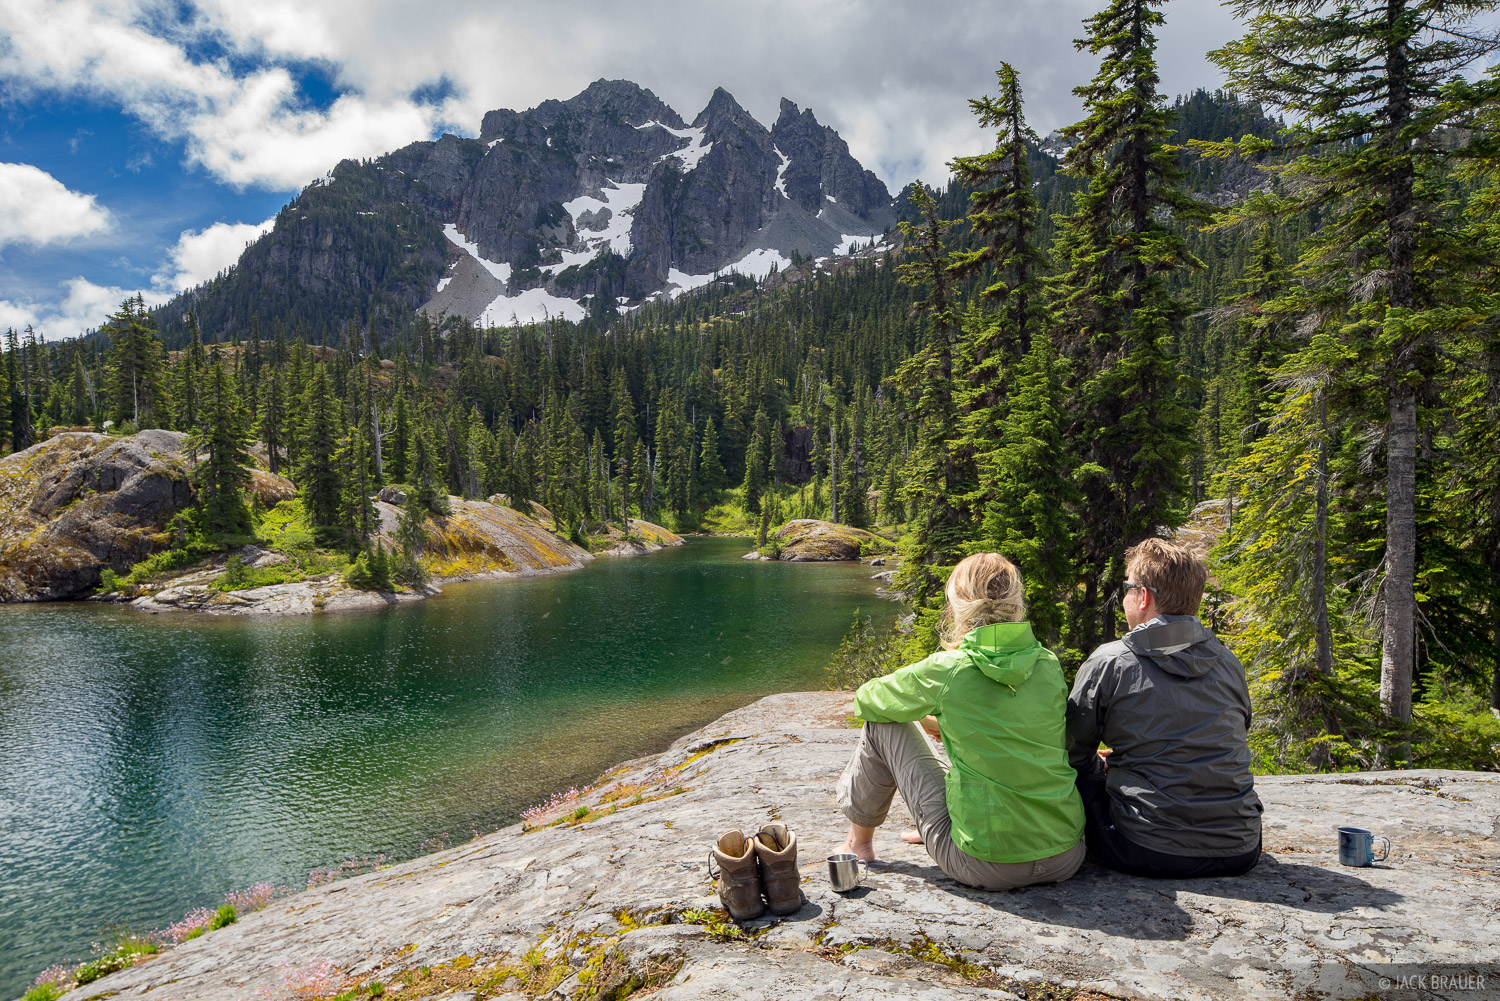 Alpine Lakes Wilderness, Spectacle Lake, Three Queens, Washington, photo